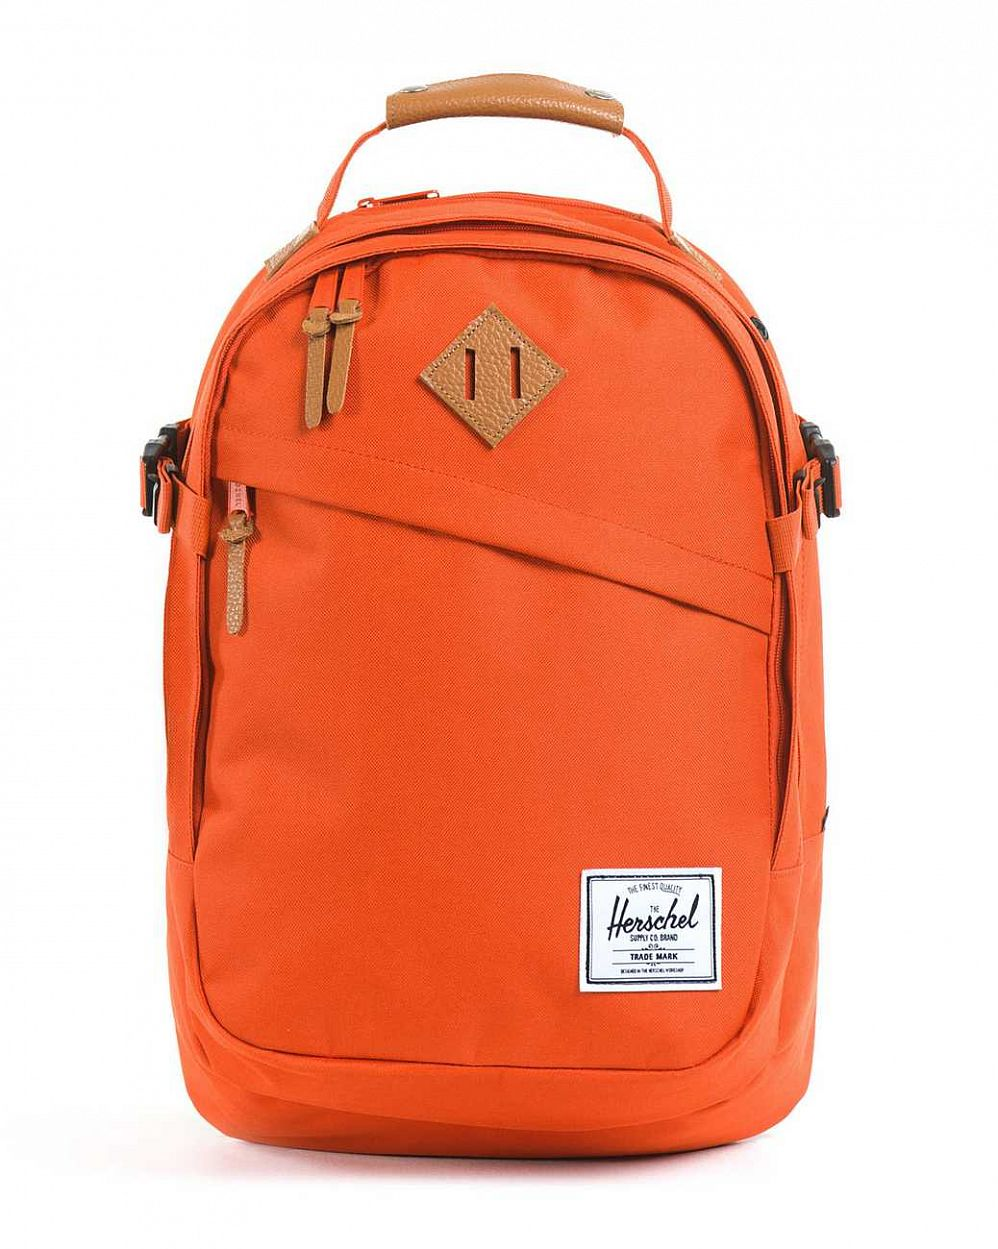 Рюкзак Herschel Sierra Camper Orange (10016) отзывы